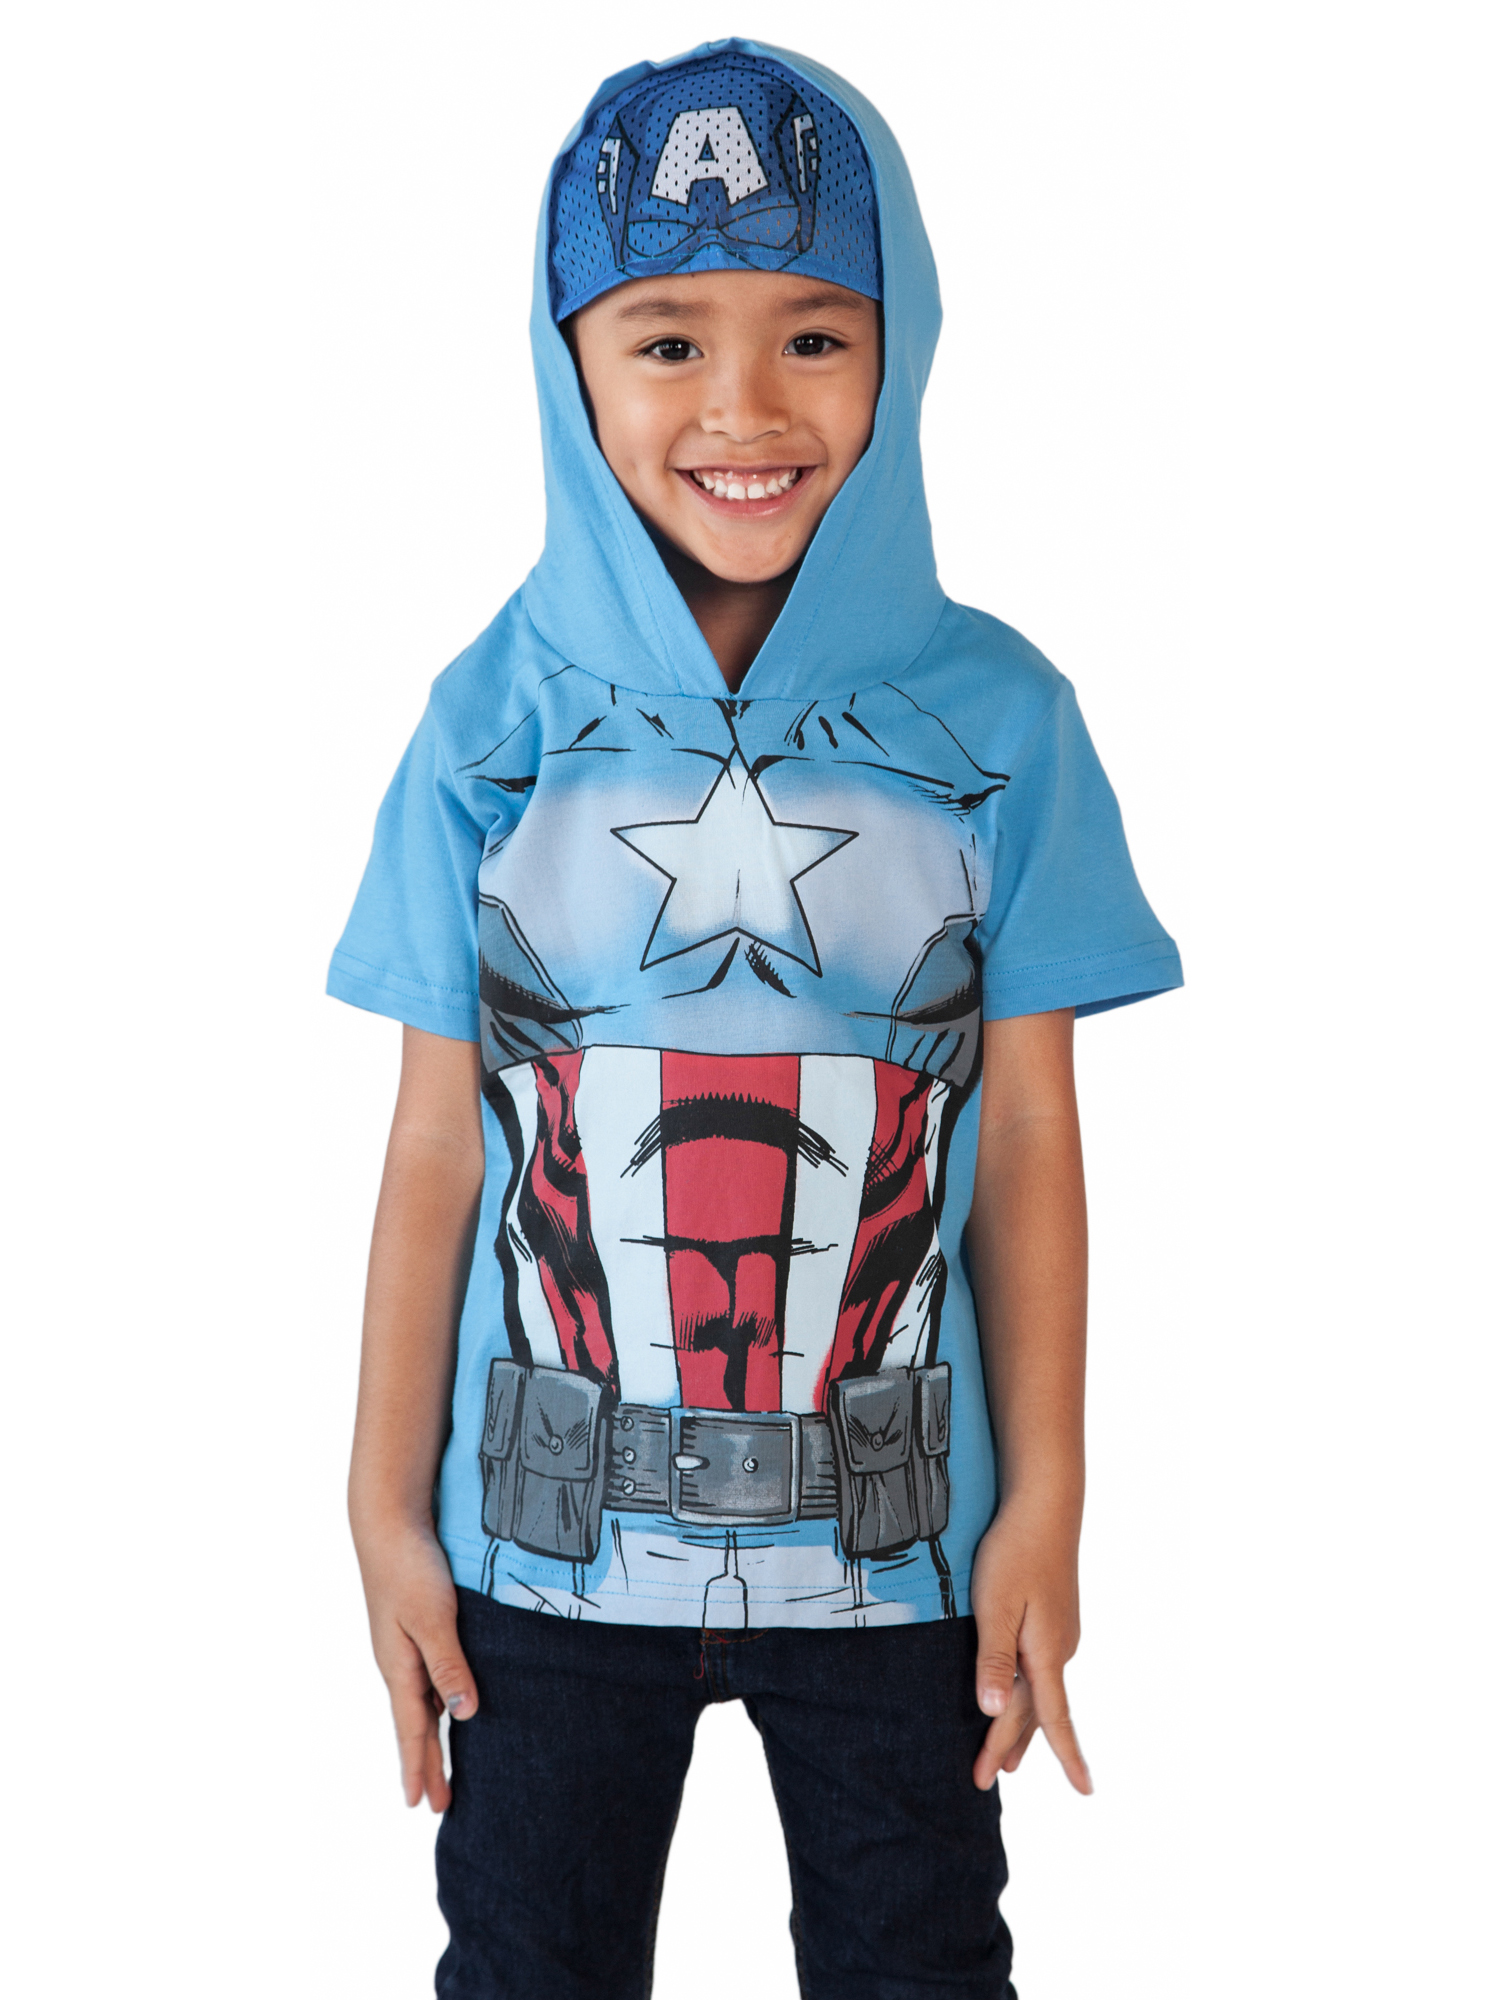 New Captain America Avengers Boys Girls lightweight tops hoodie size 4 to 13